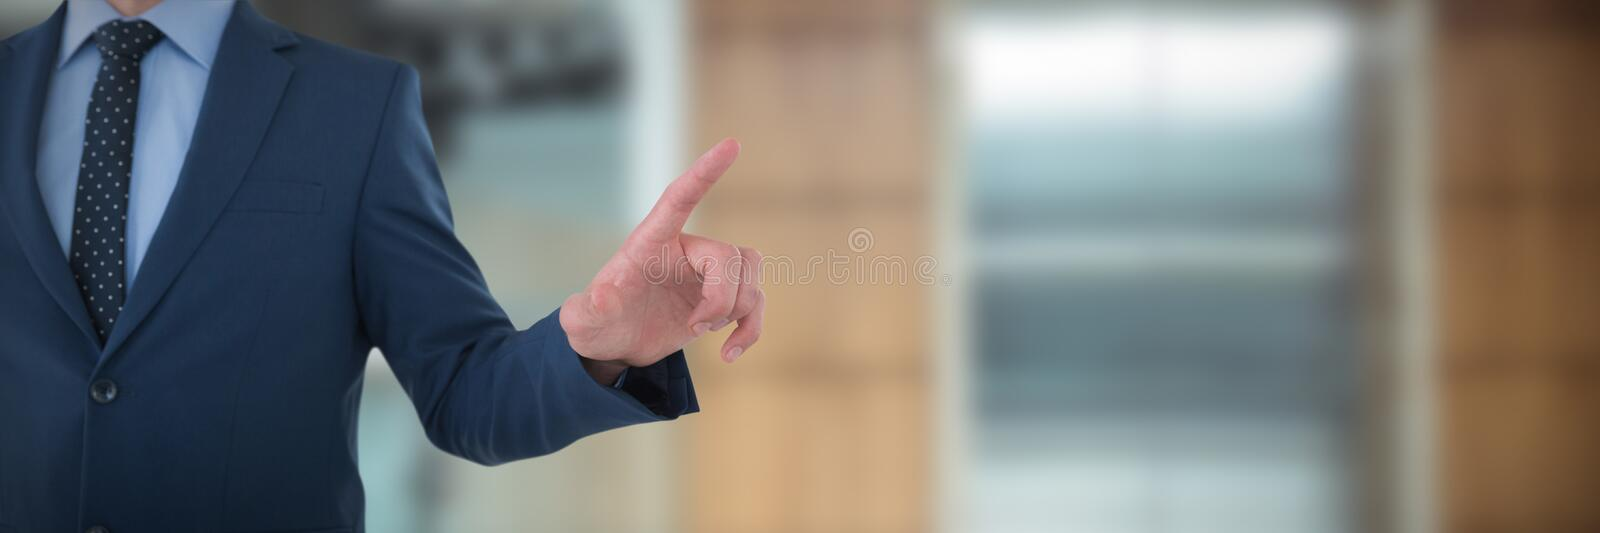 Mid section of businessman selecting on imaginary screen against lift in office building royalty free stock images